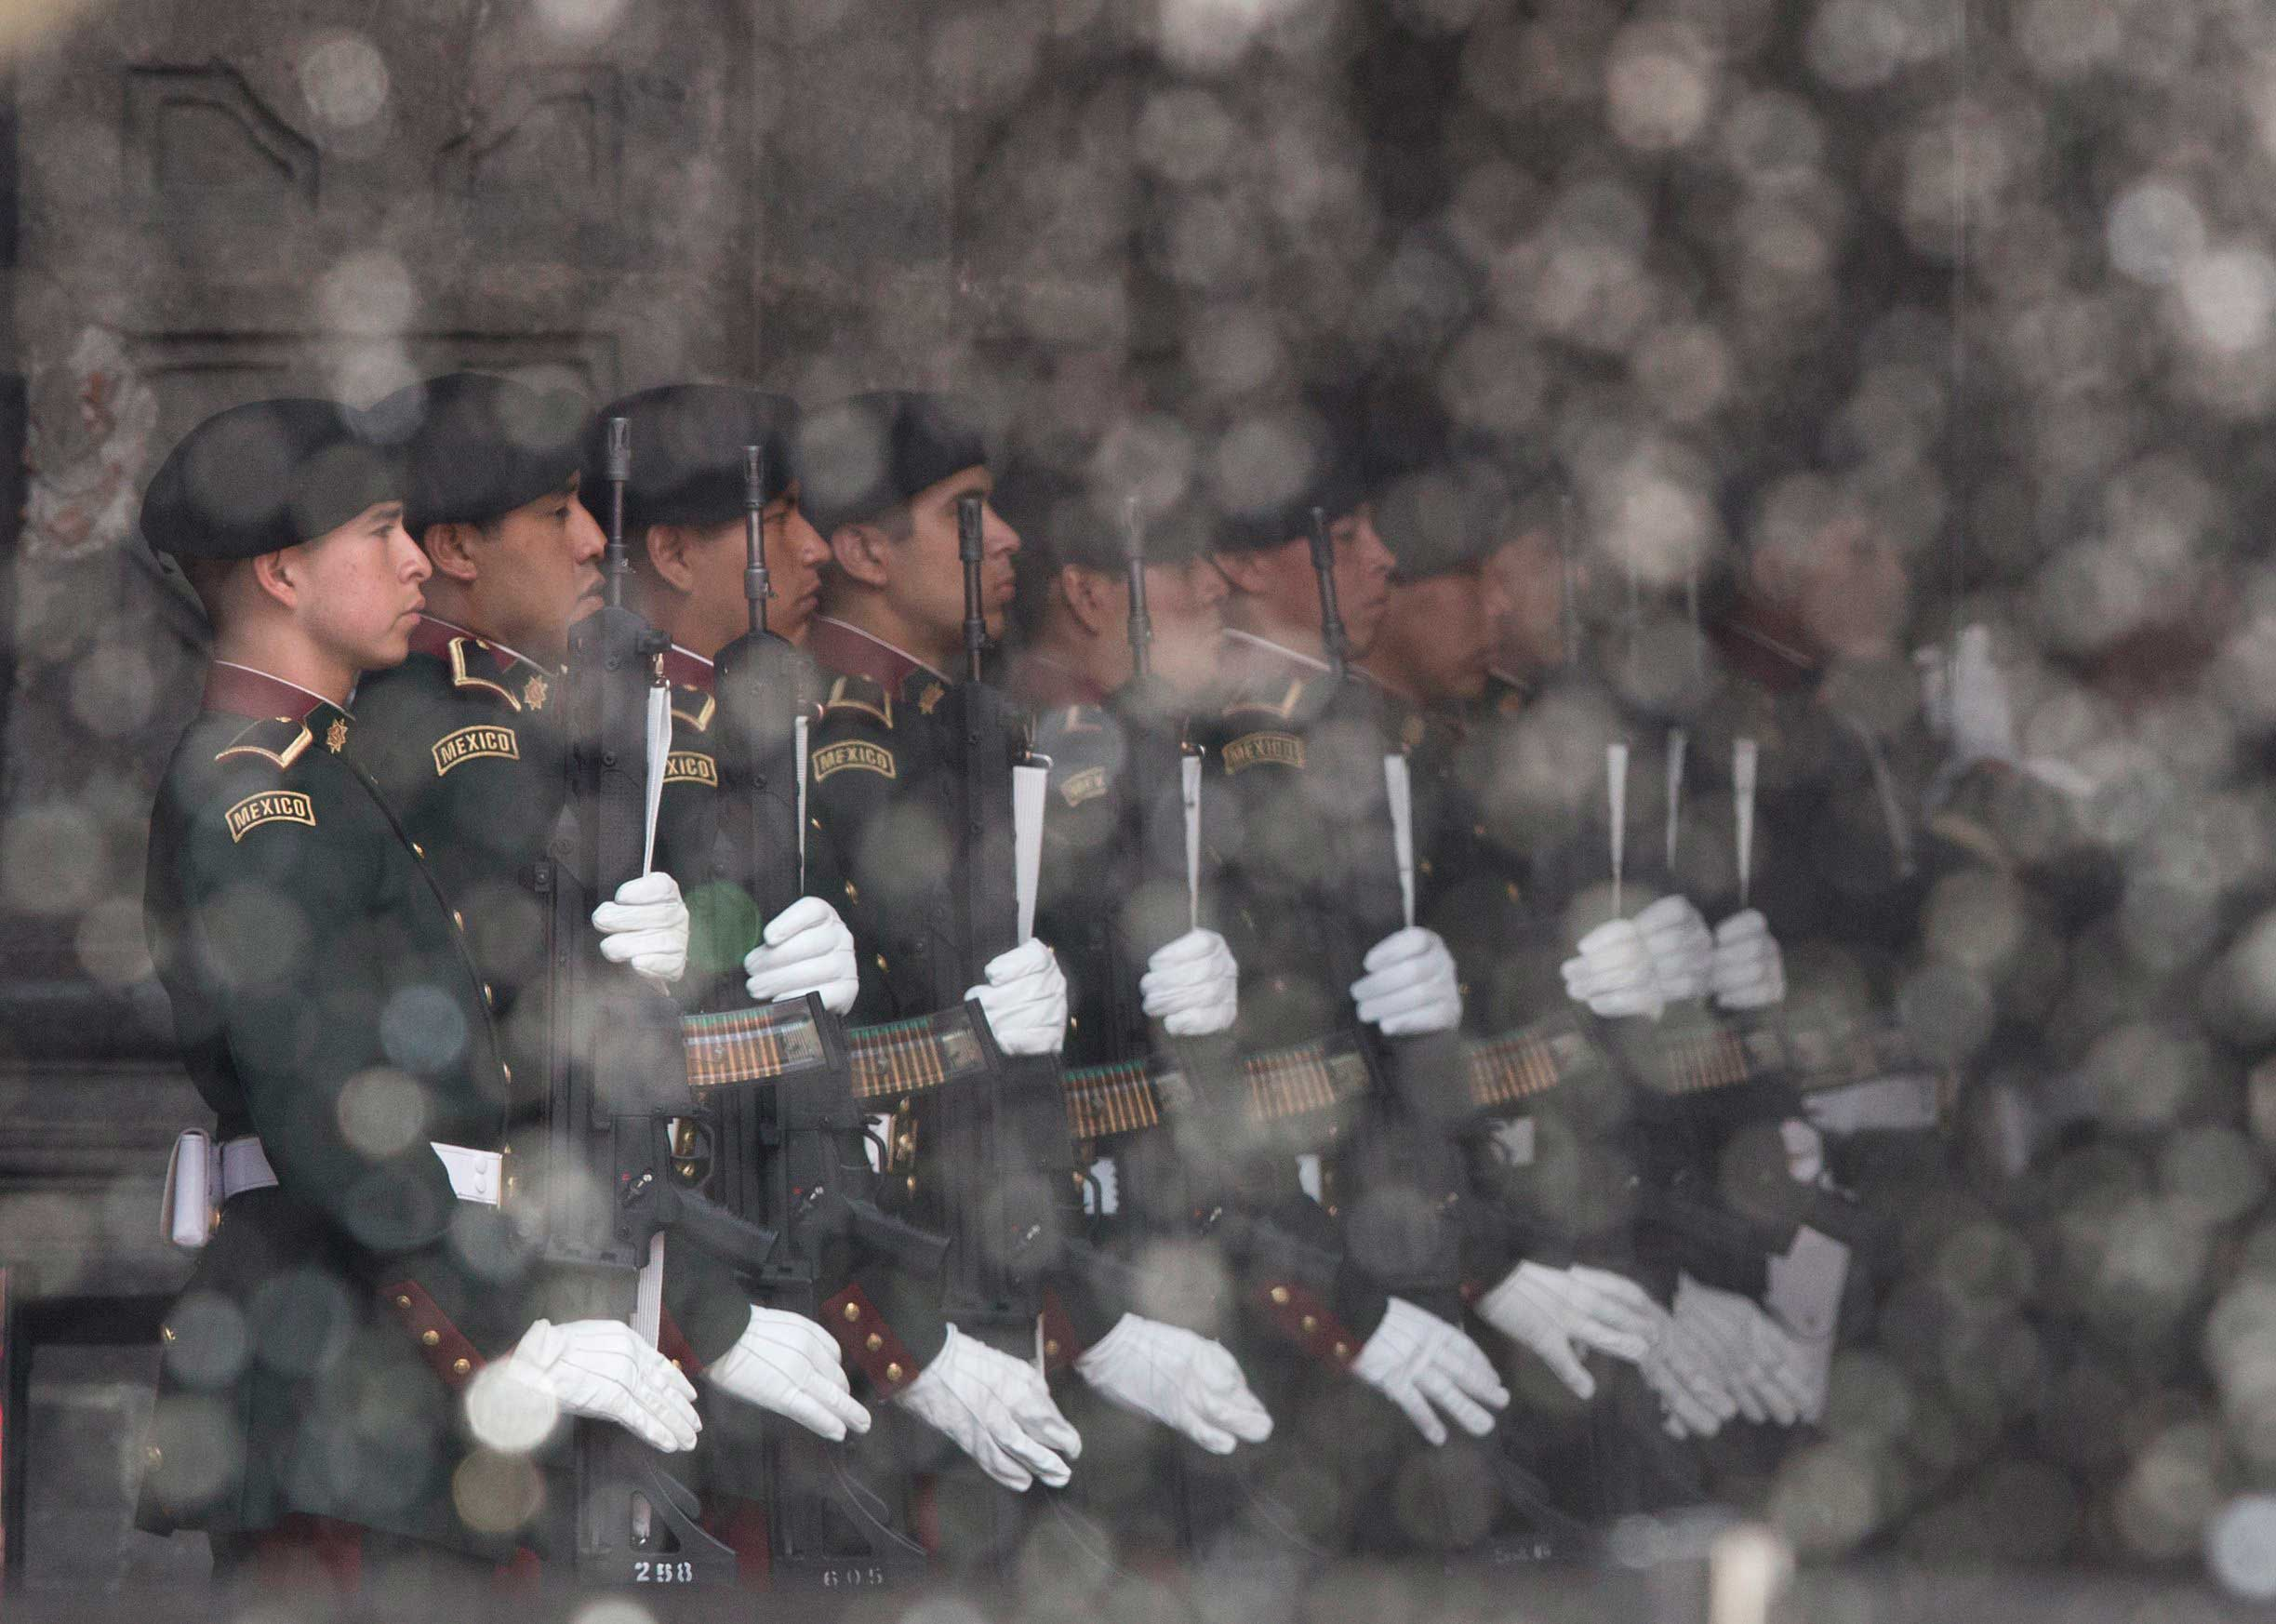 Oct. 31, 2014. Members of a Mexican honor guard stand behind the spray from a water fountain during a welcoming ceremony for El Salvador's President Salvador Sánchez Cerén at the National Palace in Mexico City.